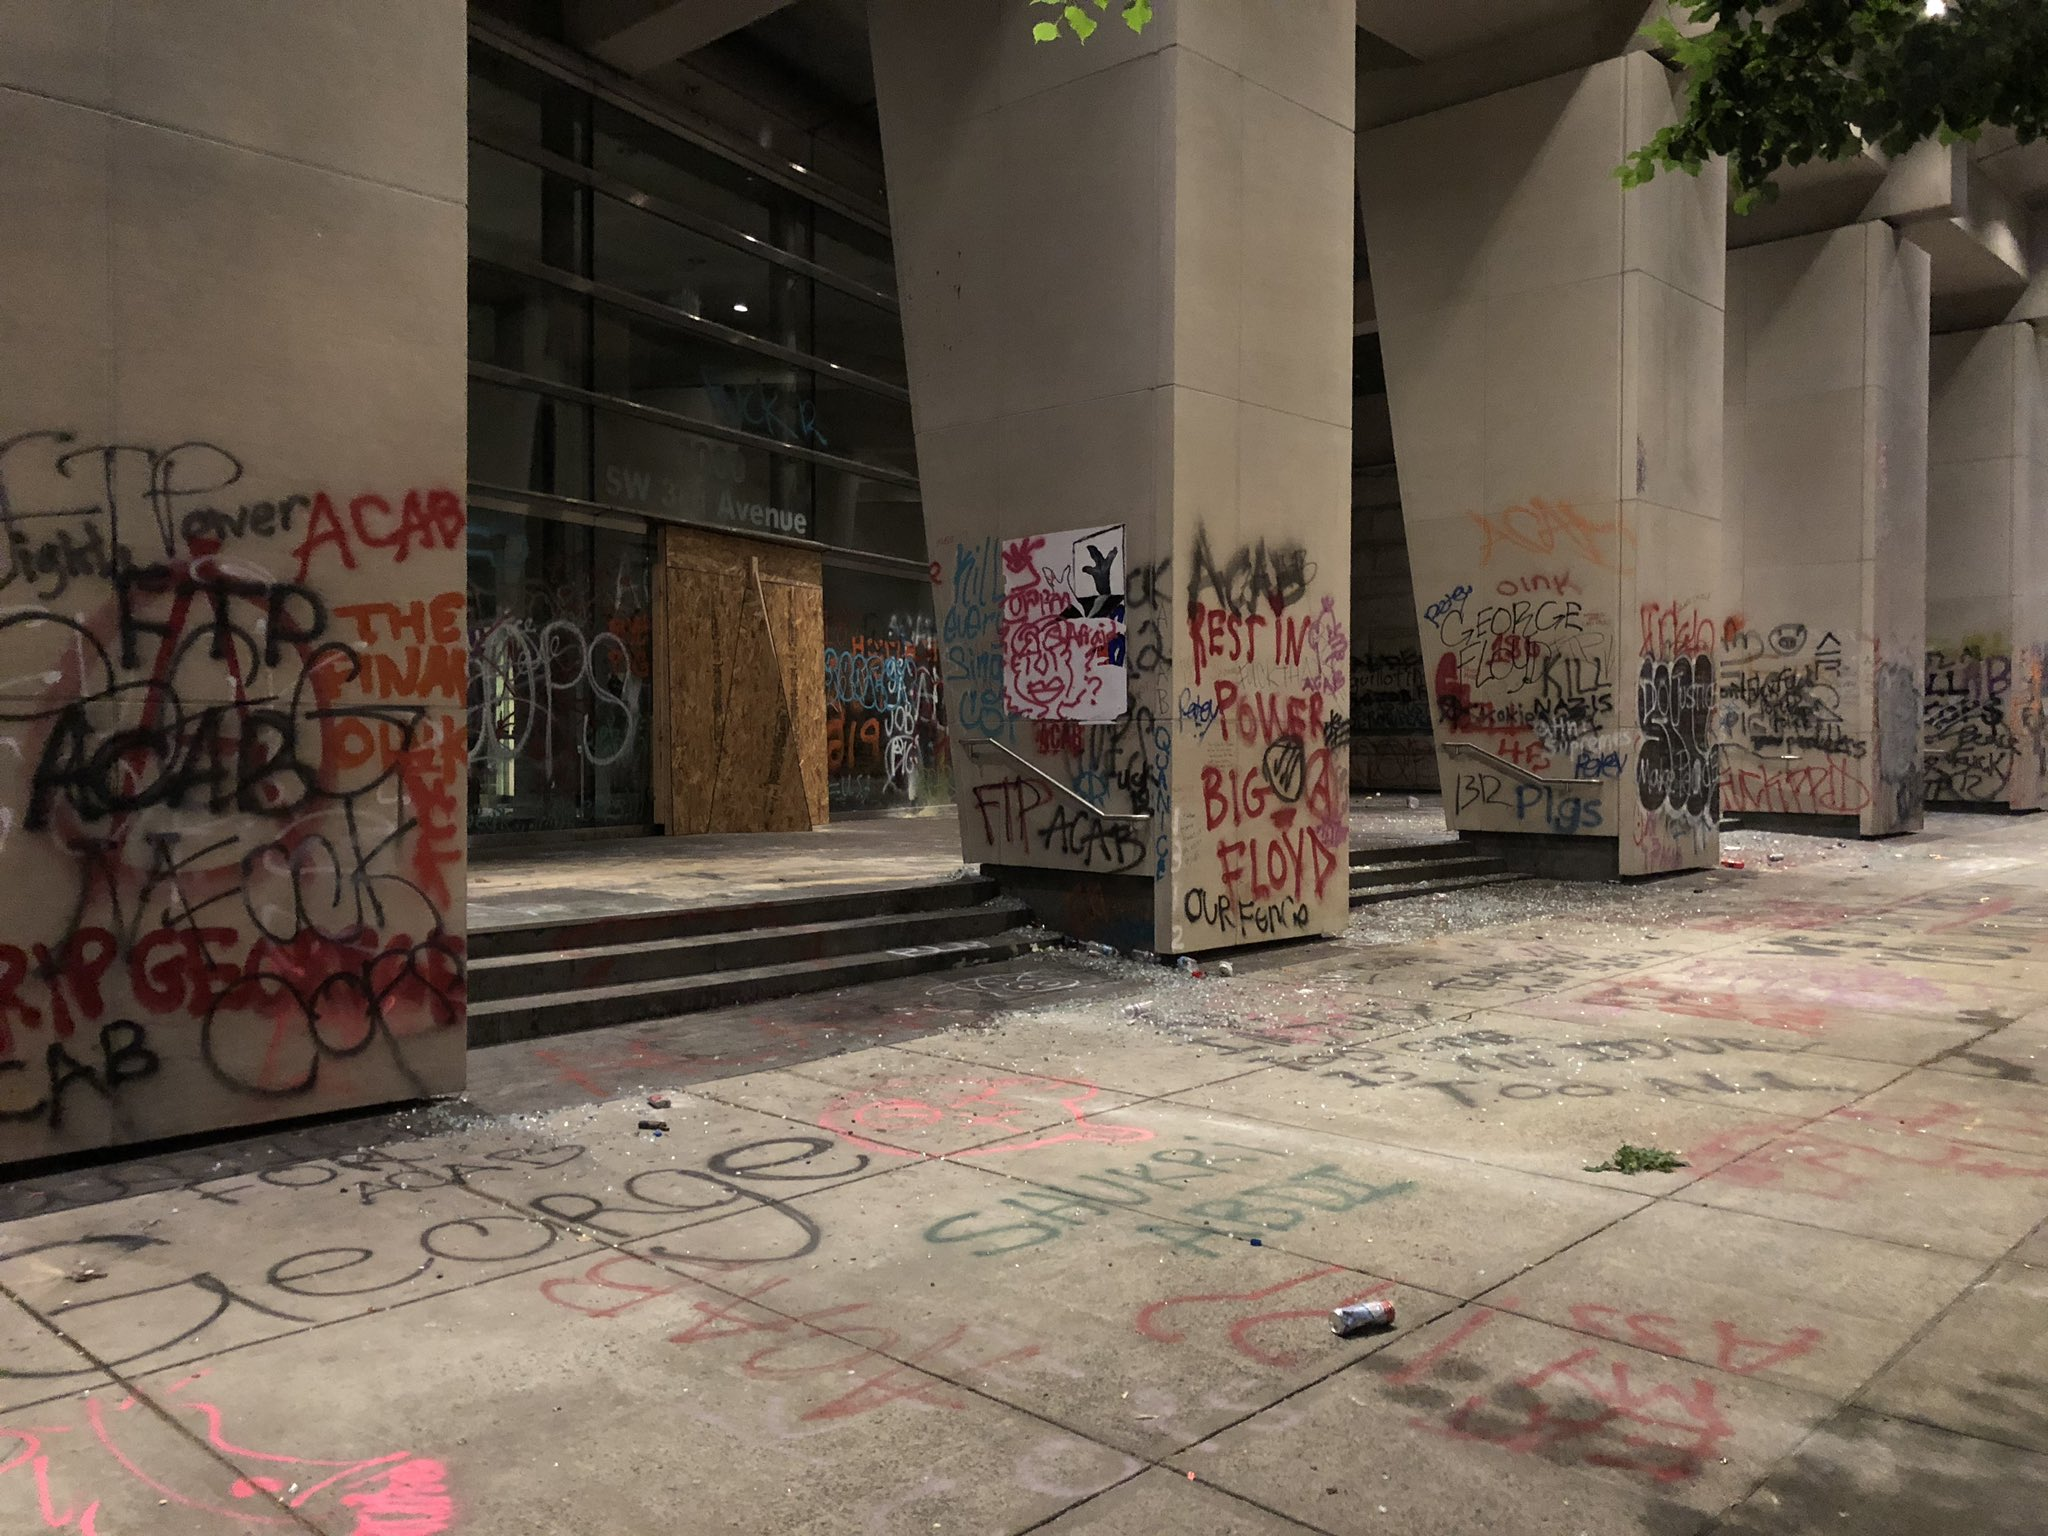 Police said demonstrators broke windows and started a fire inside the federal courthouse building in downtown Portland the night of July 2, 2020 and in the early morning hours. KATU photo